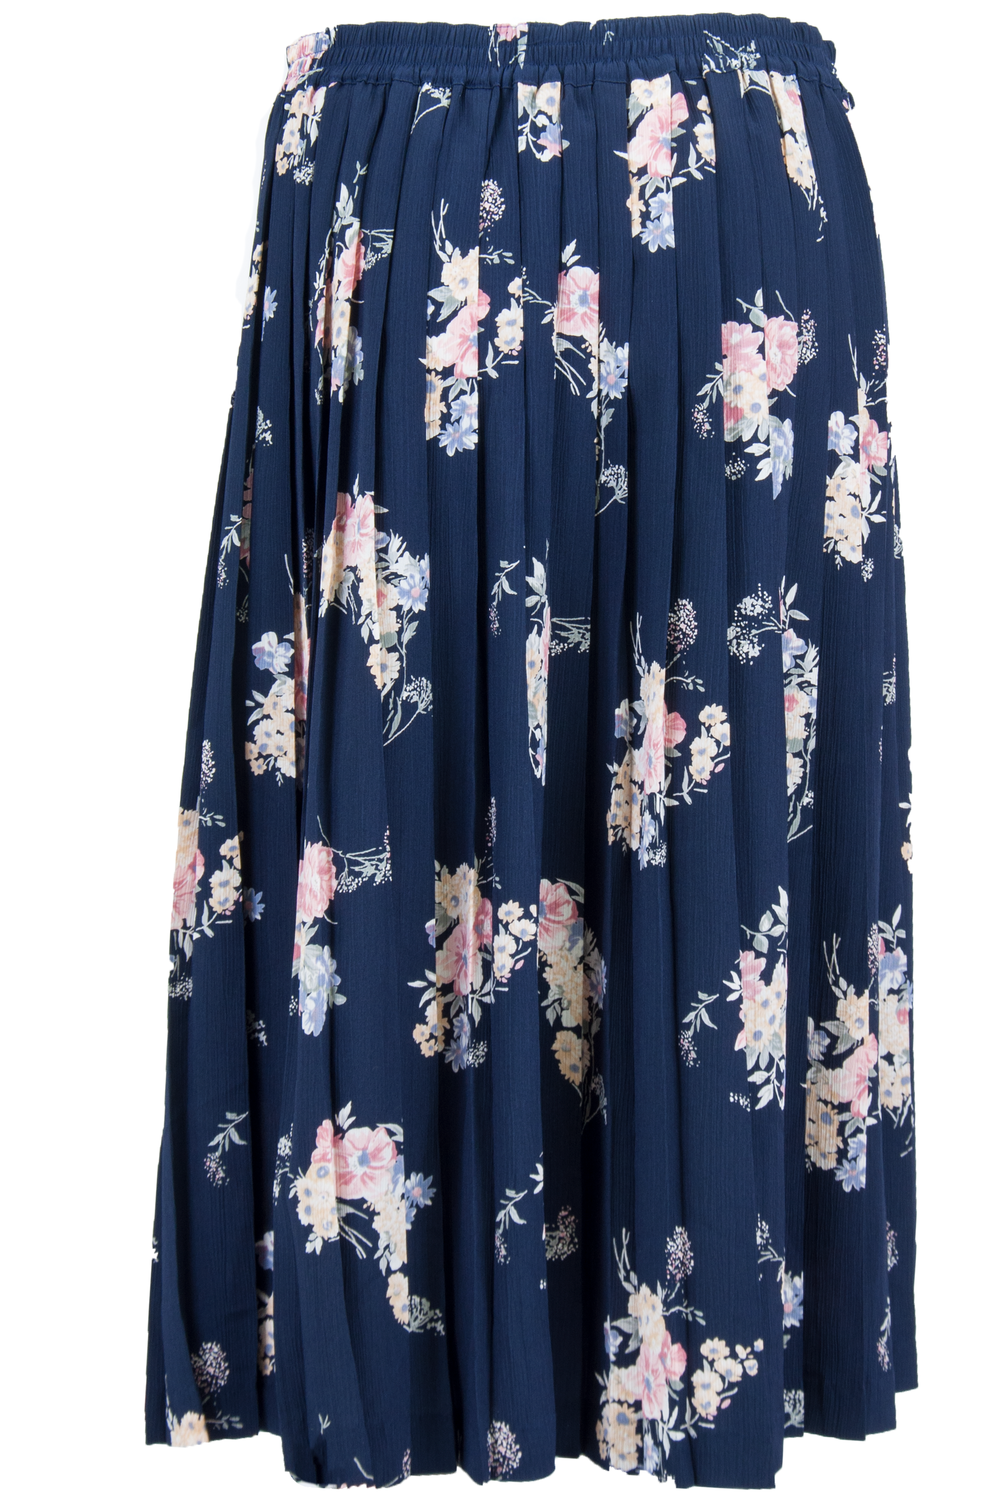 pleated blue maxi skirt with pink flower print